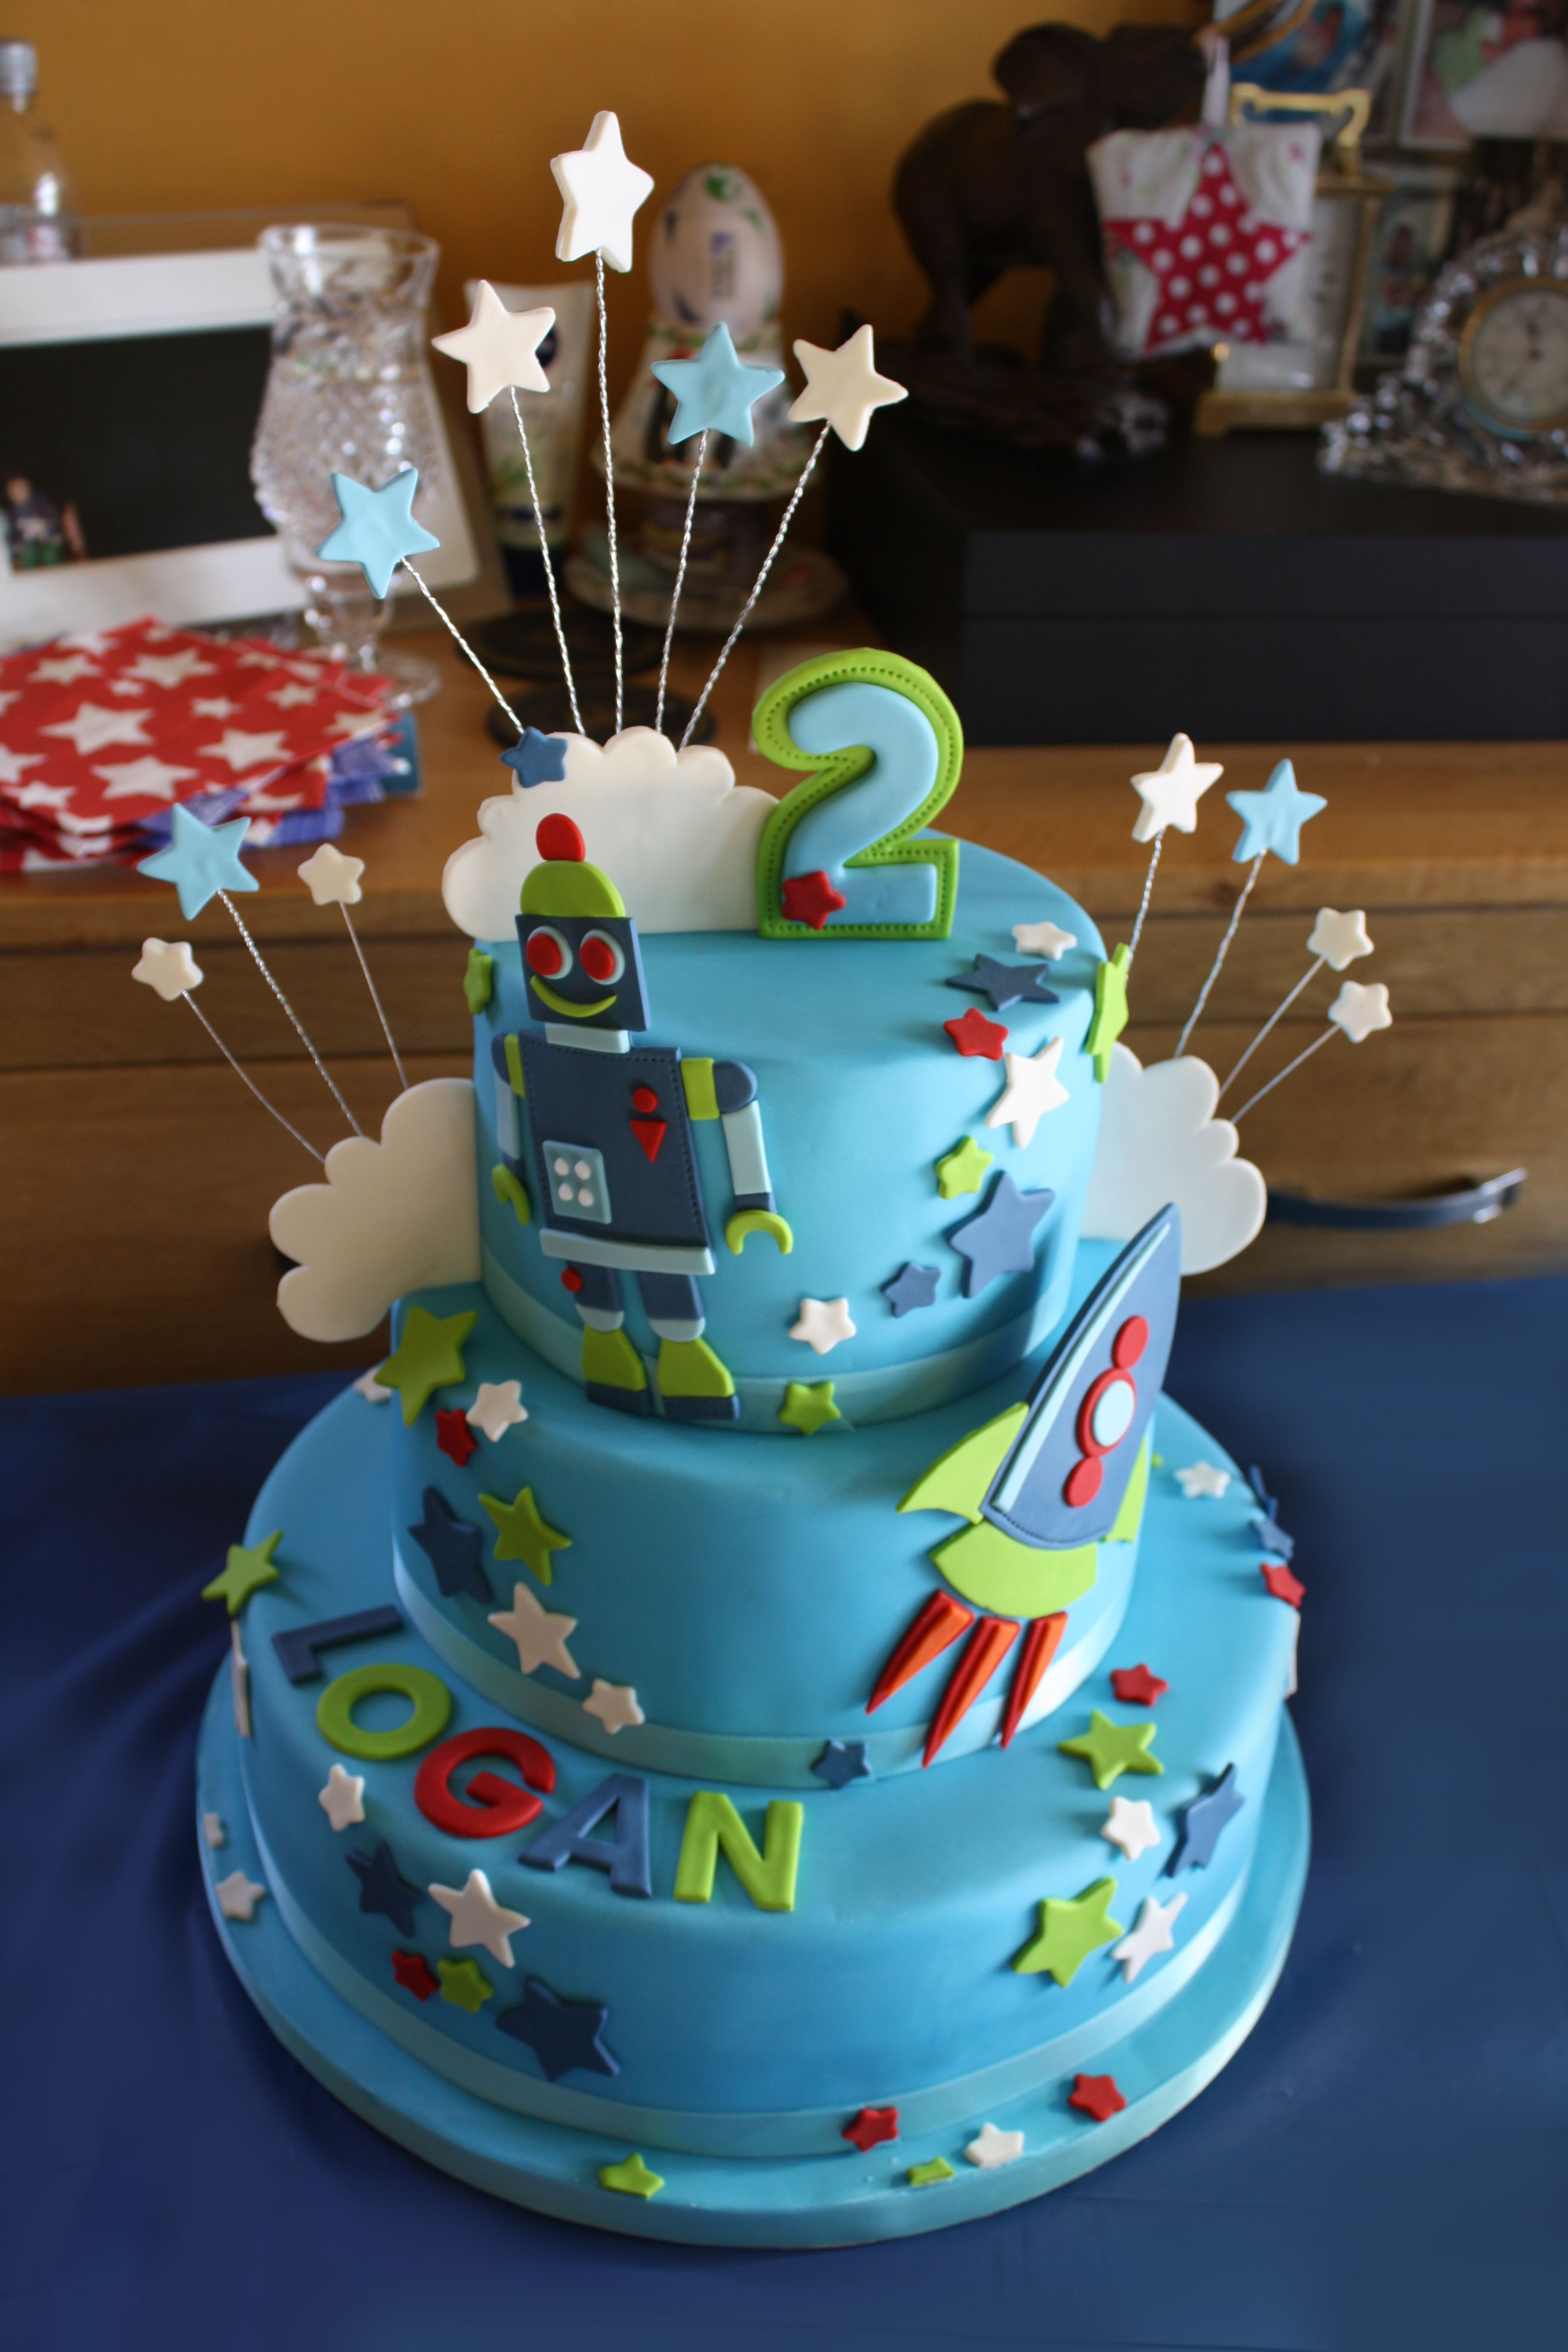 Rockets Stars And Robots Cake For Logan S Naming Day Cake